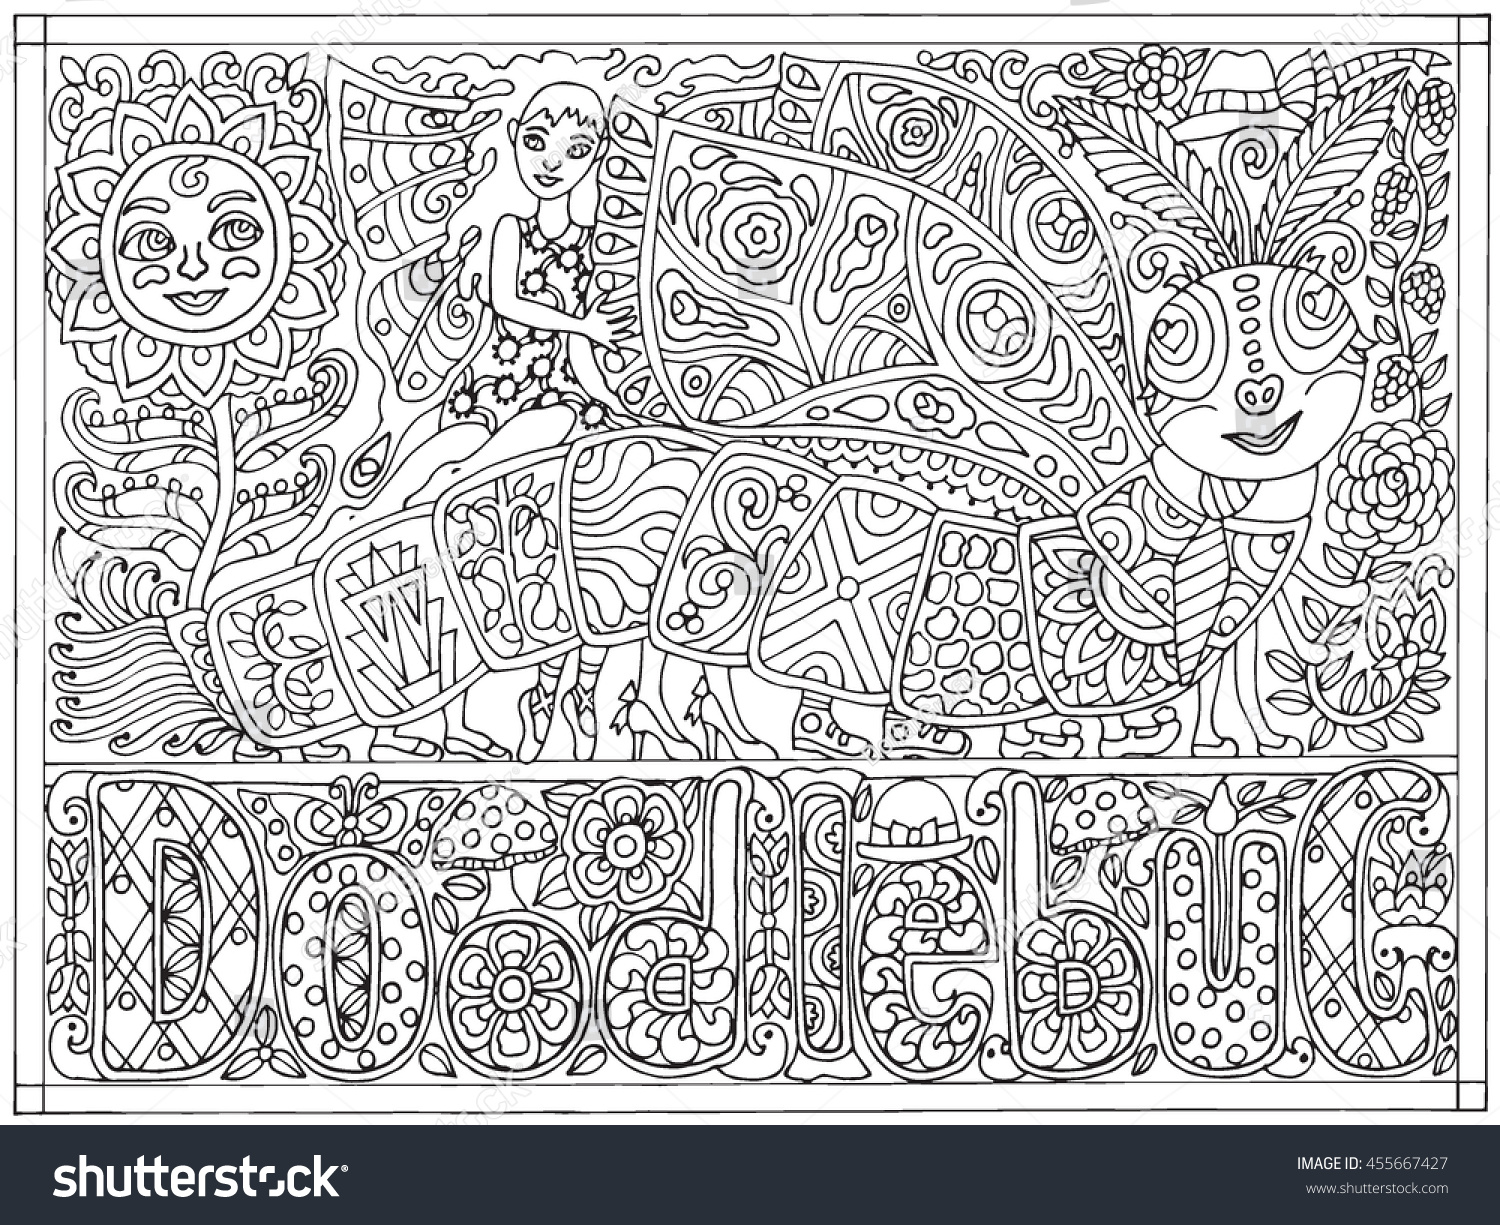 Doodlebug Hand Drawn Black And White Adult Color Book Vector Illustration Fairy Fantasy